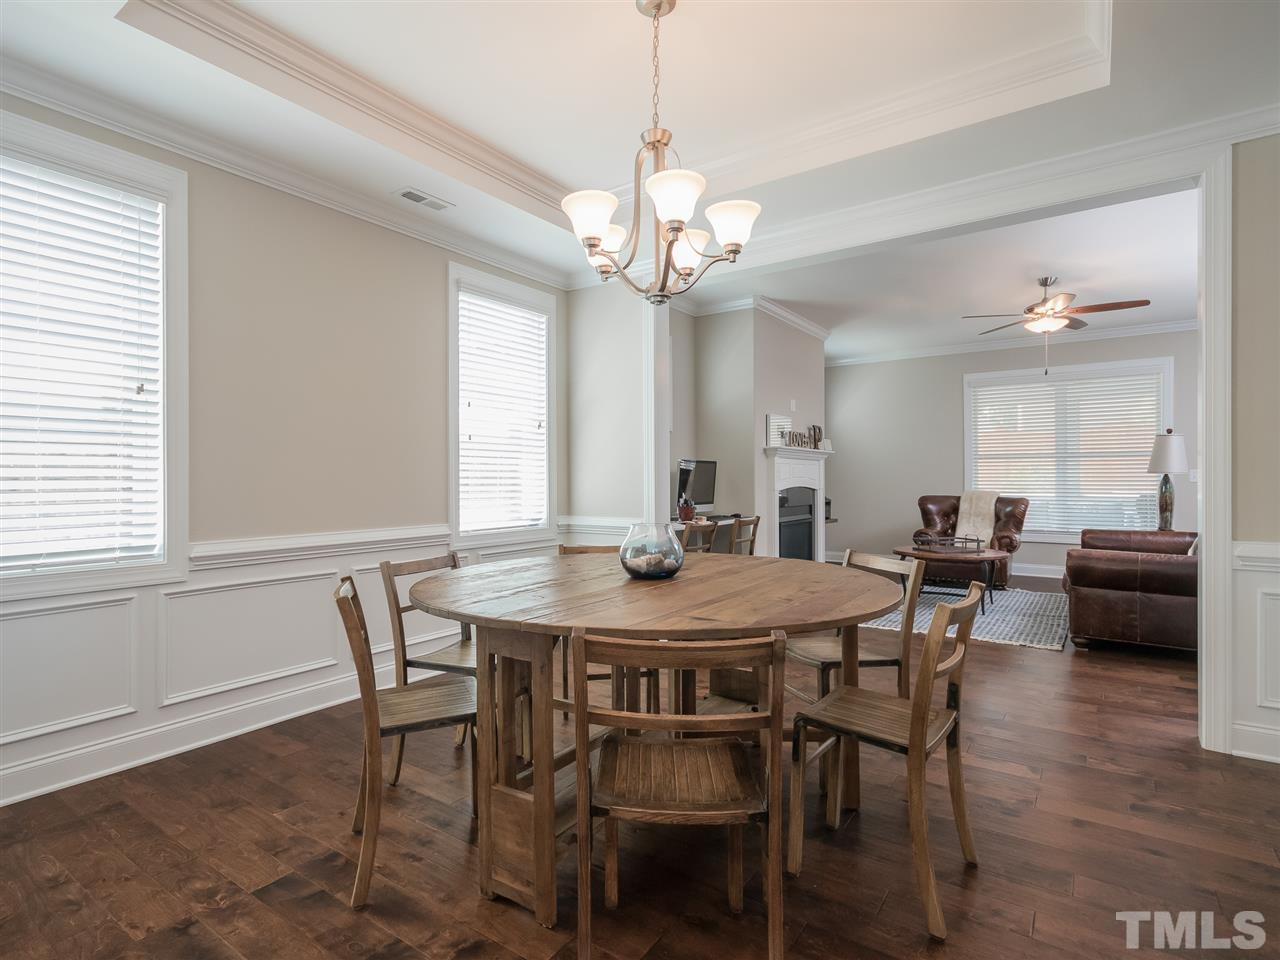 Dining room is open to the kitchen and the family room.